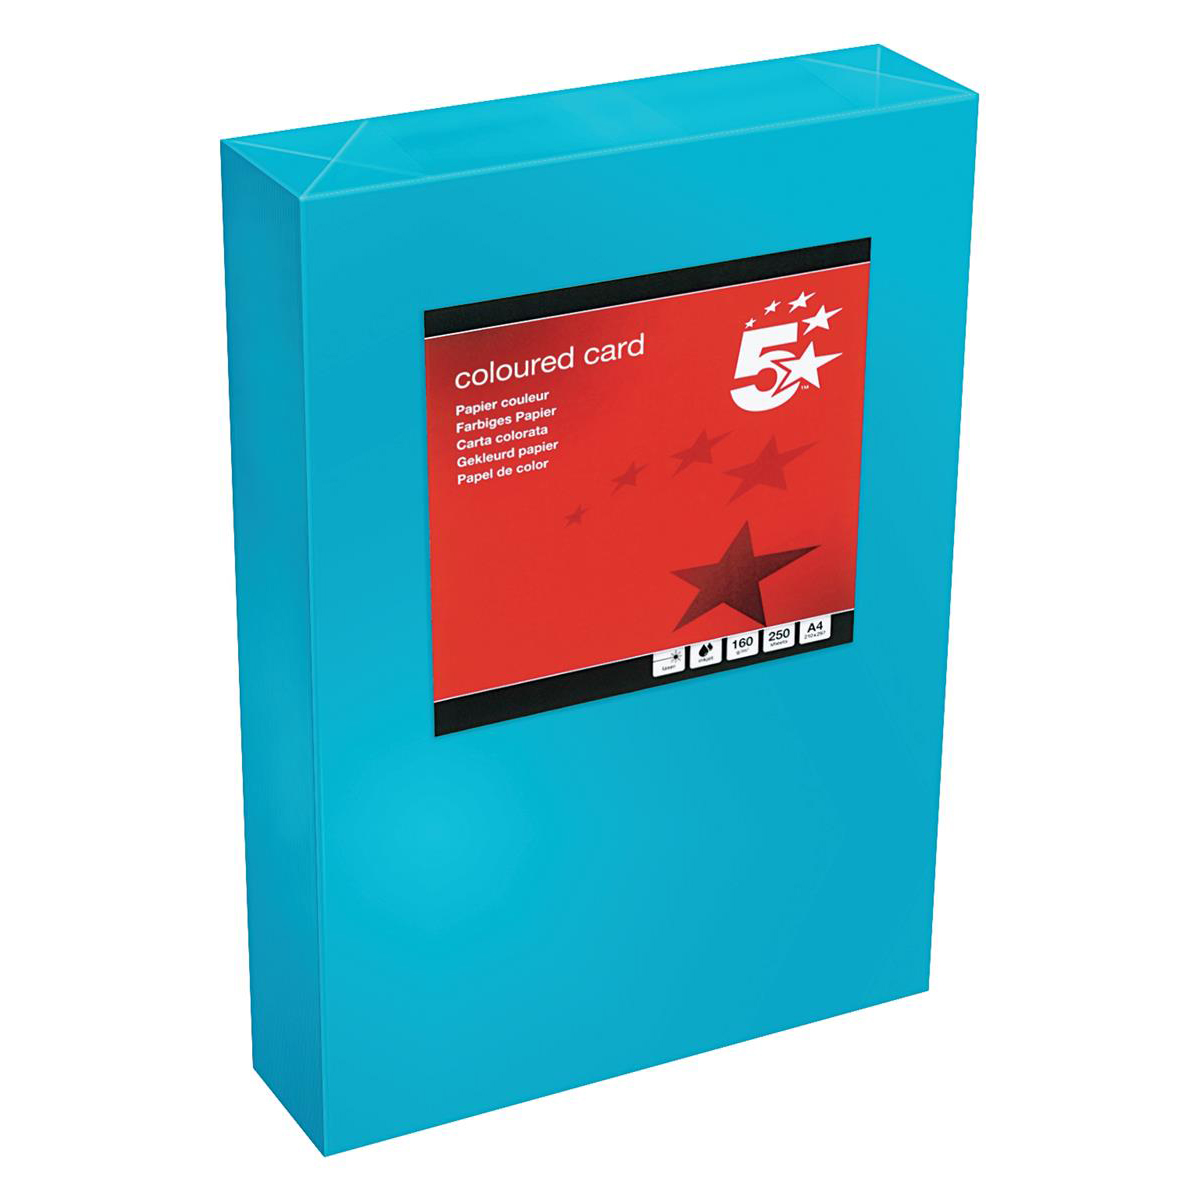 5 Star Office Coloured Card Tinted 160gsm A4 Deep Blue Pack 250